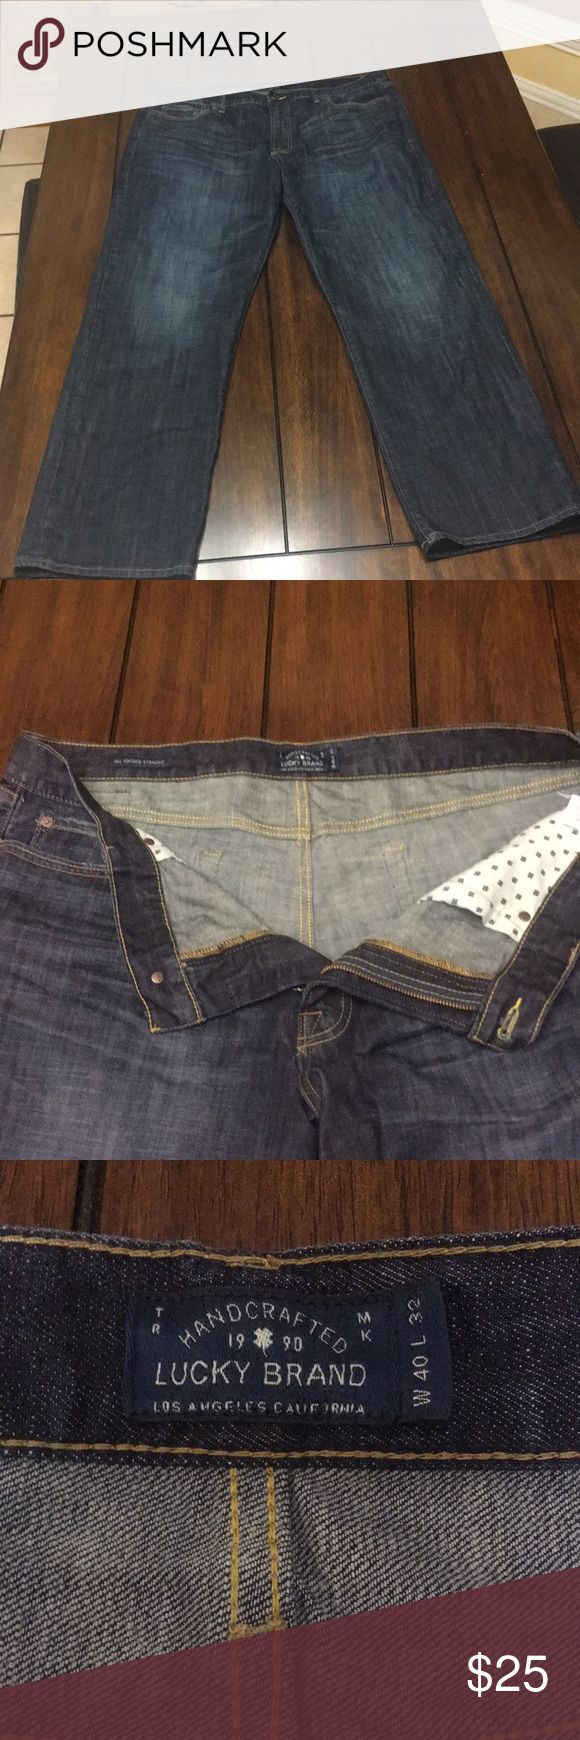 Lucky Brand Mens Jeans Lucky Brand Vintage Straight Jeans. Size 40WX32L. In good used condition. Lucky Brand Jeans Straight